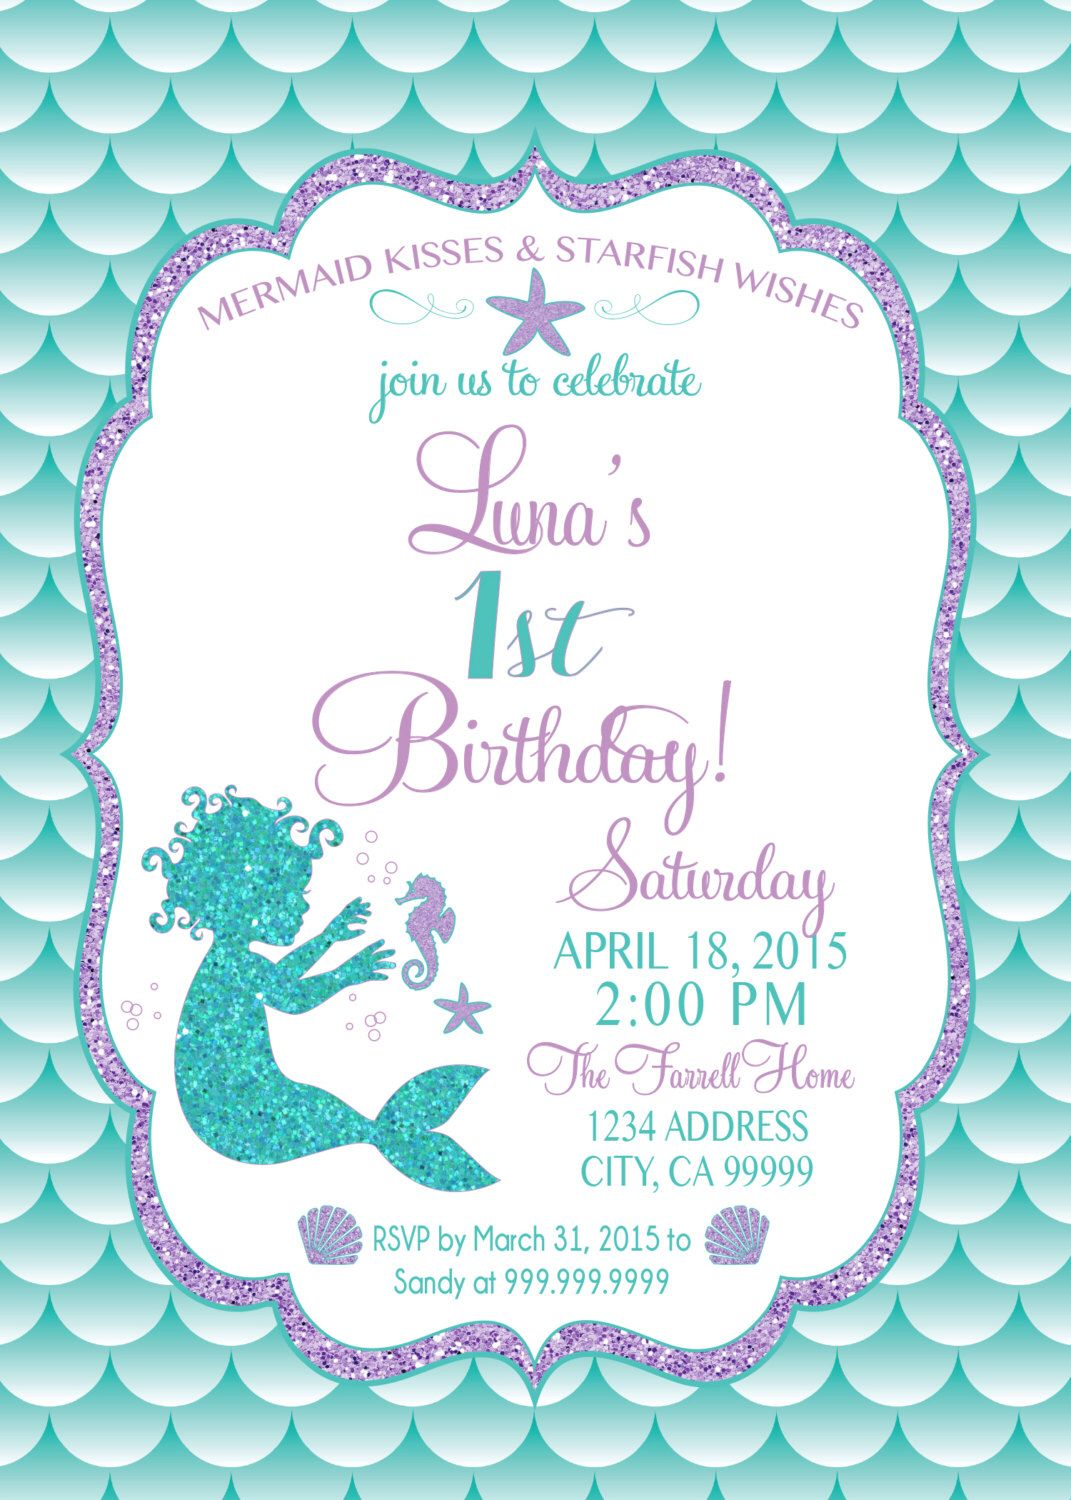 mermaid birthday invitations with picture ; 40daaf5dee7a0ce013a85917ff1a1af6